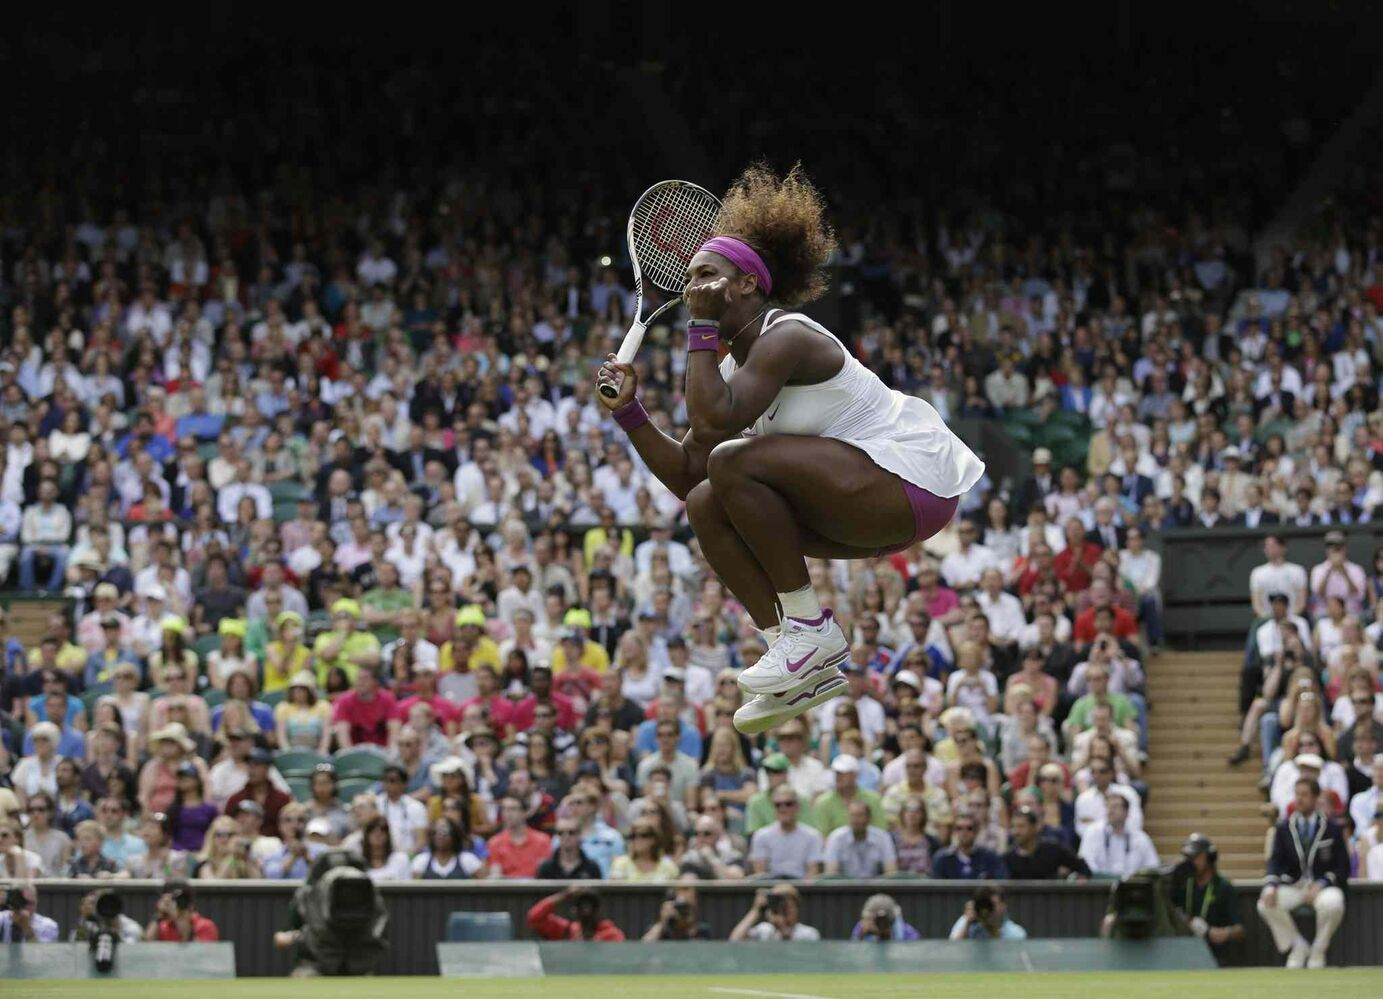 June 30, 2012: - Serena Williams of the United States reacts after winning against Zheng Jie of China during a third round women's singles match at the All England Lawn Tennis Championships at Wimbledon, England.  (Anja Niedringhaus / The Associated Press)